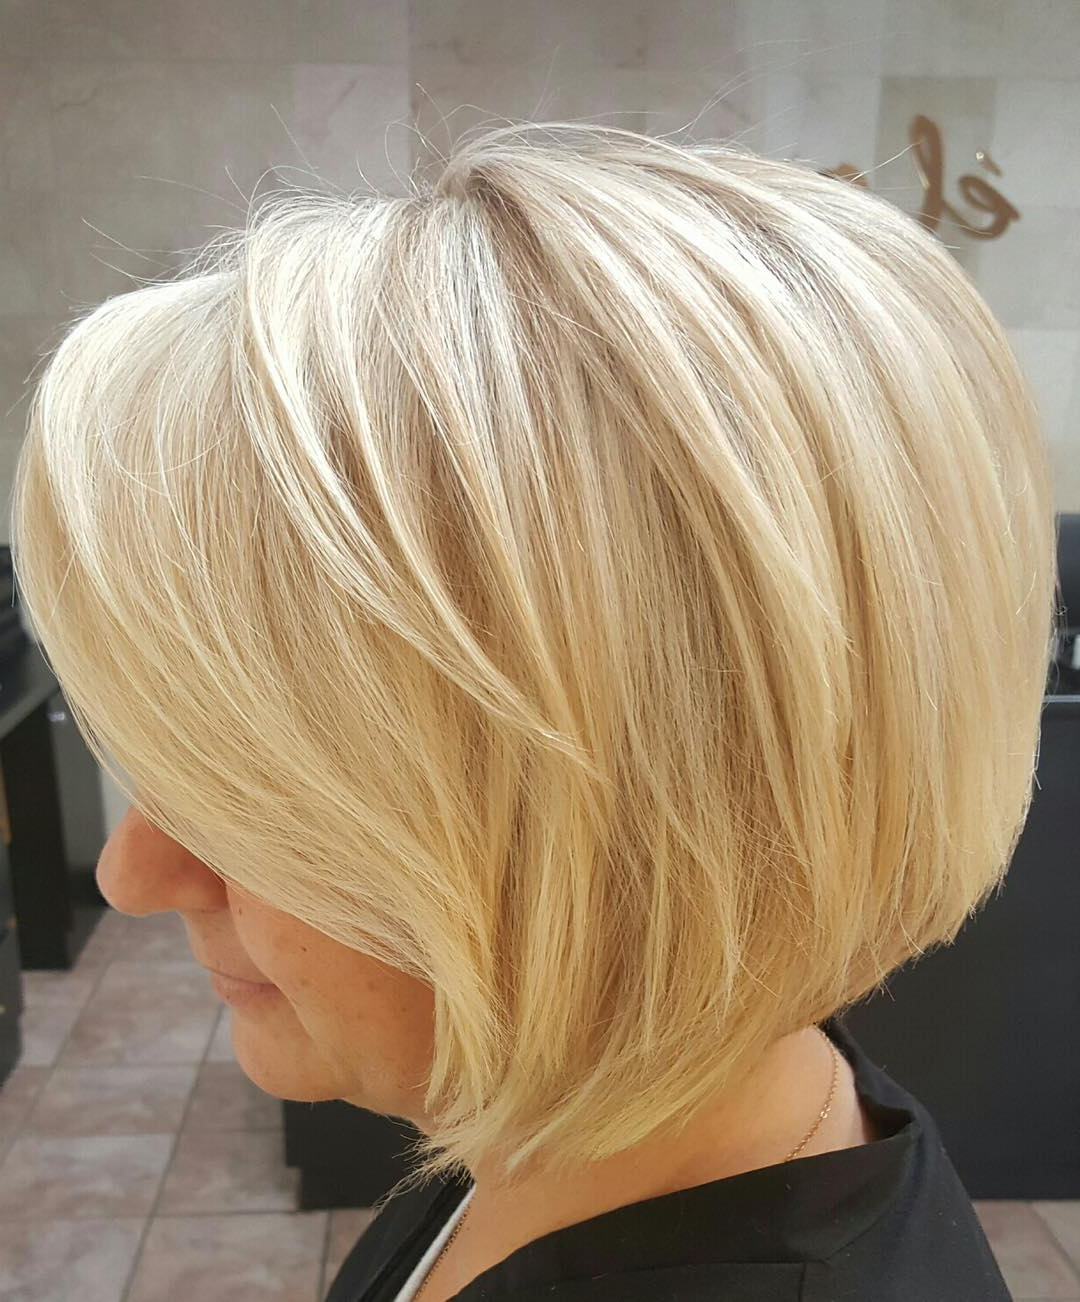 [%most Recent Concave Bob Hairstyles Within 55 Short Layered Bob Hairstyles — [which One Is The Best To|55 Short Layered Bob Hairstyles — [which One Is The Best To Within Preferred Concave Bob Hairstyles%] (View 9 of 20)